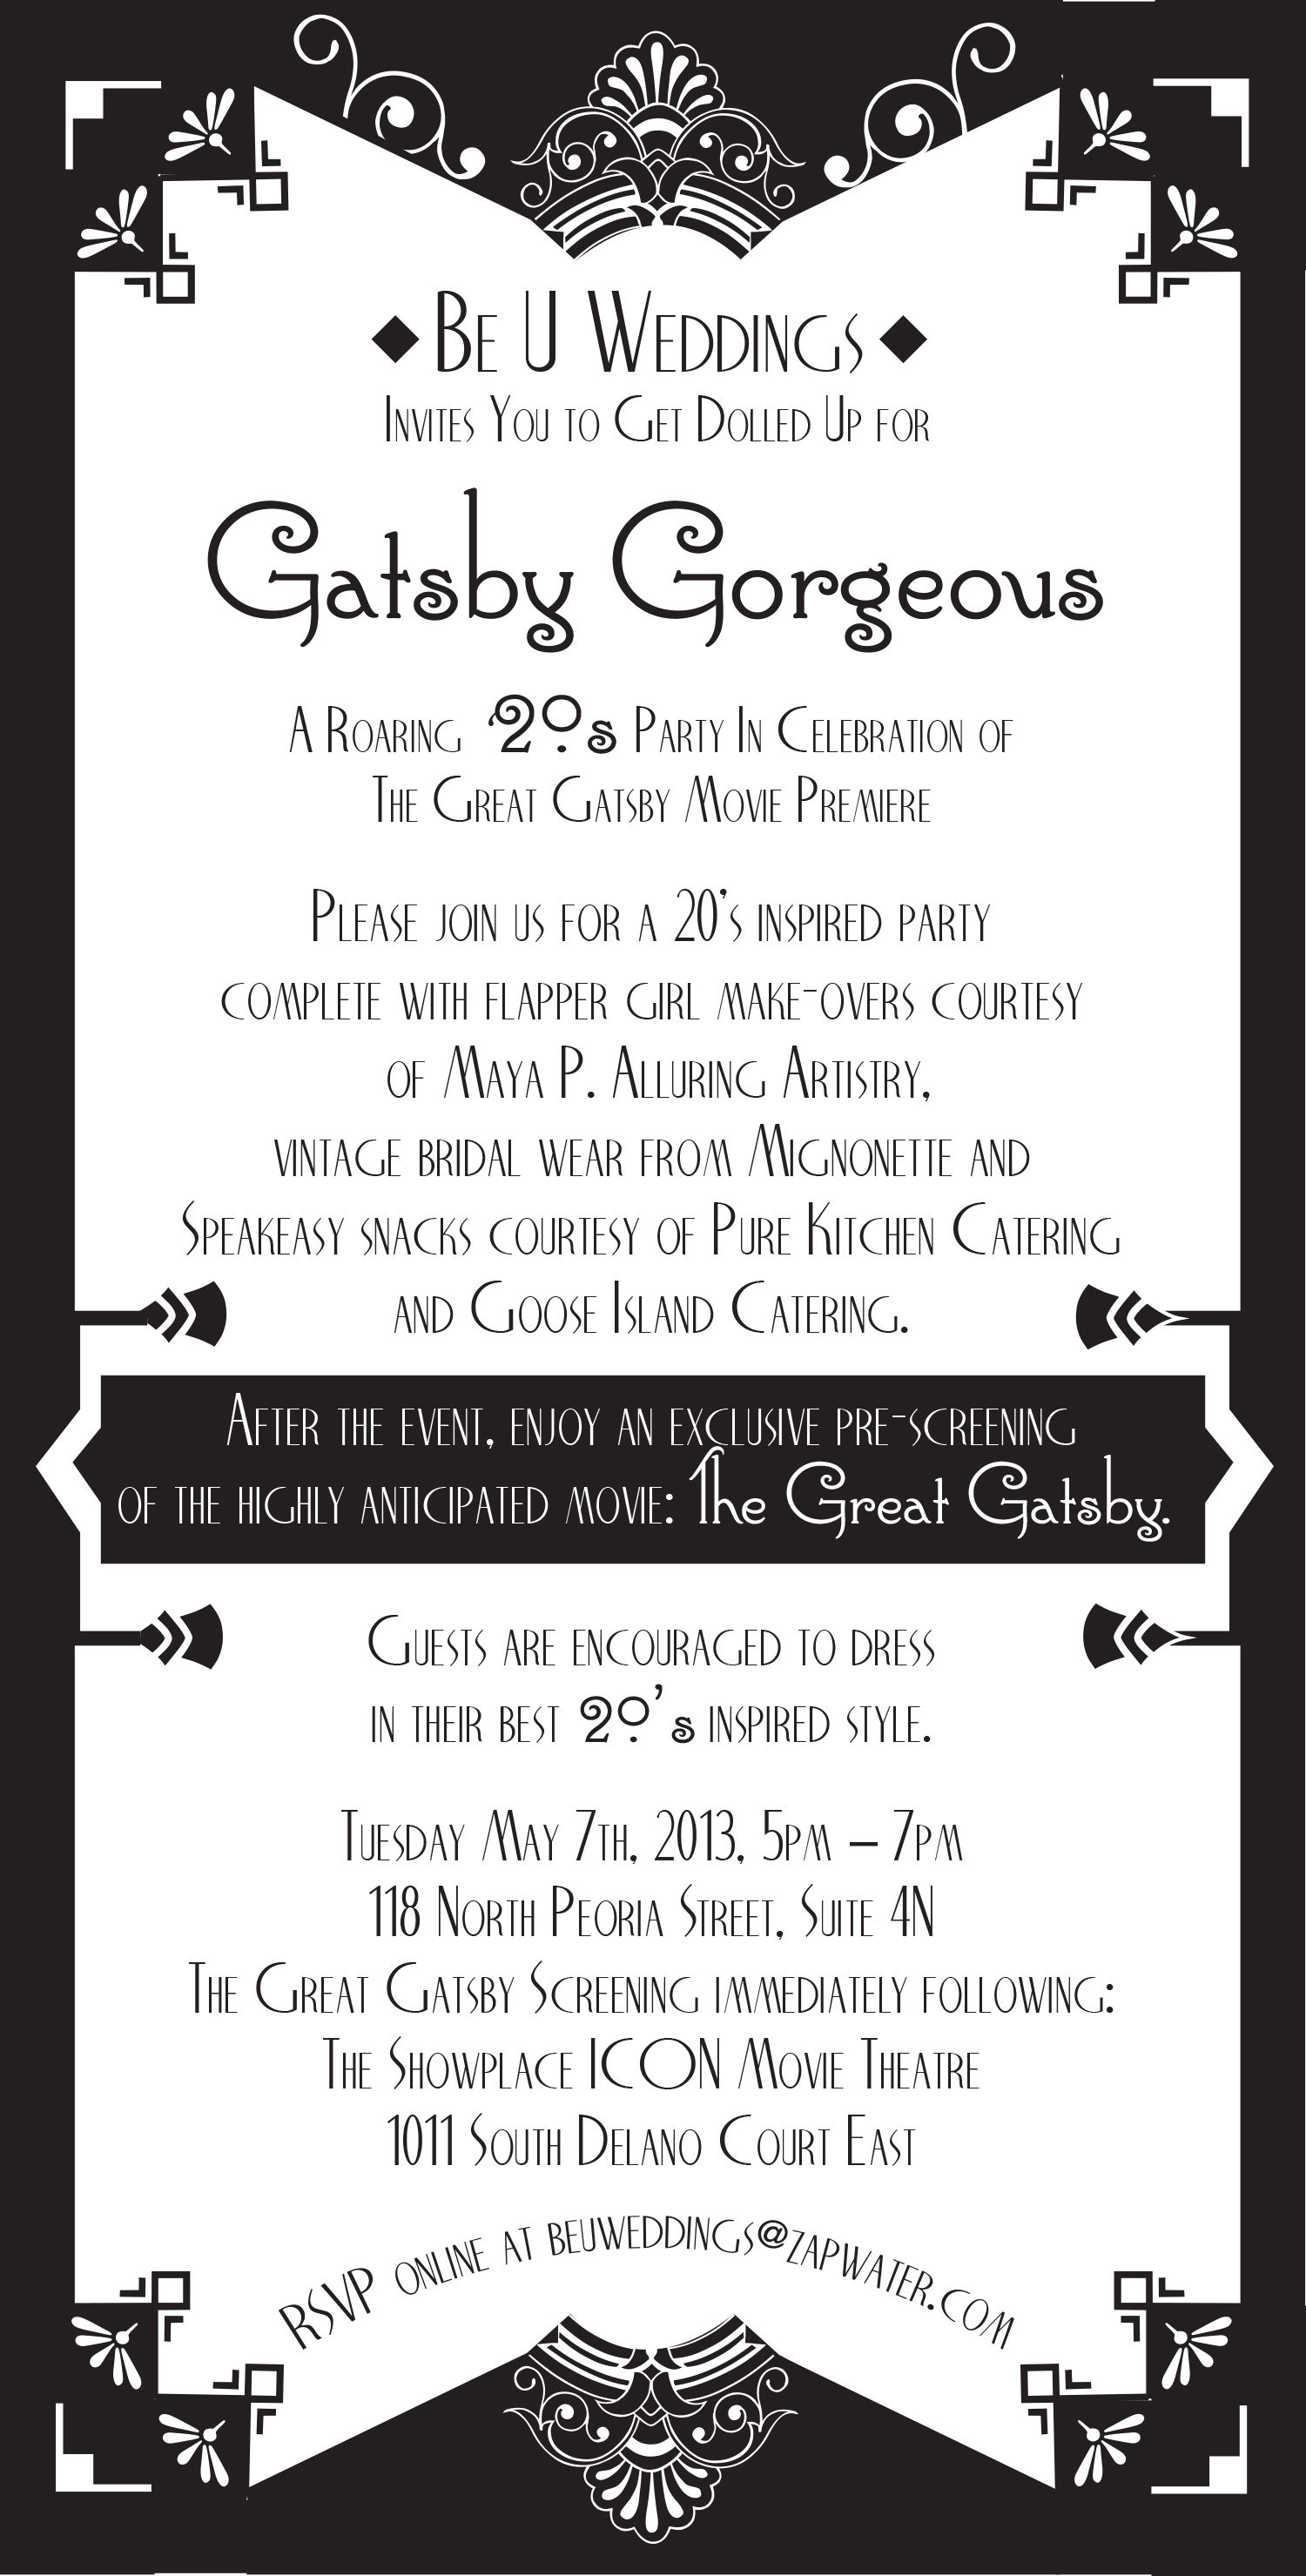 Gatsby themed party invitation party invitation wording gatsby themed party invitation party invitation wording samples also great gatsby party stopboris Gallery